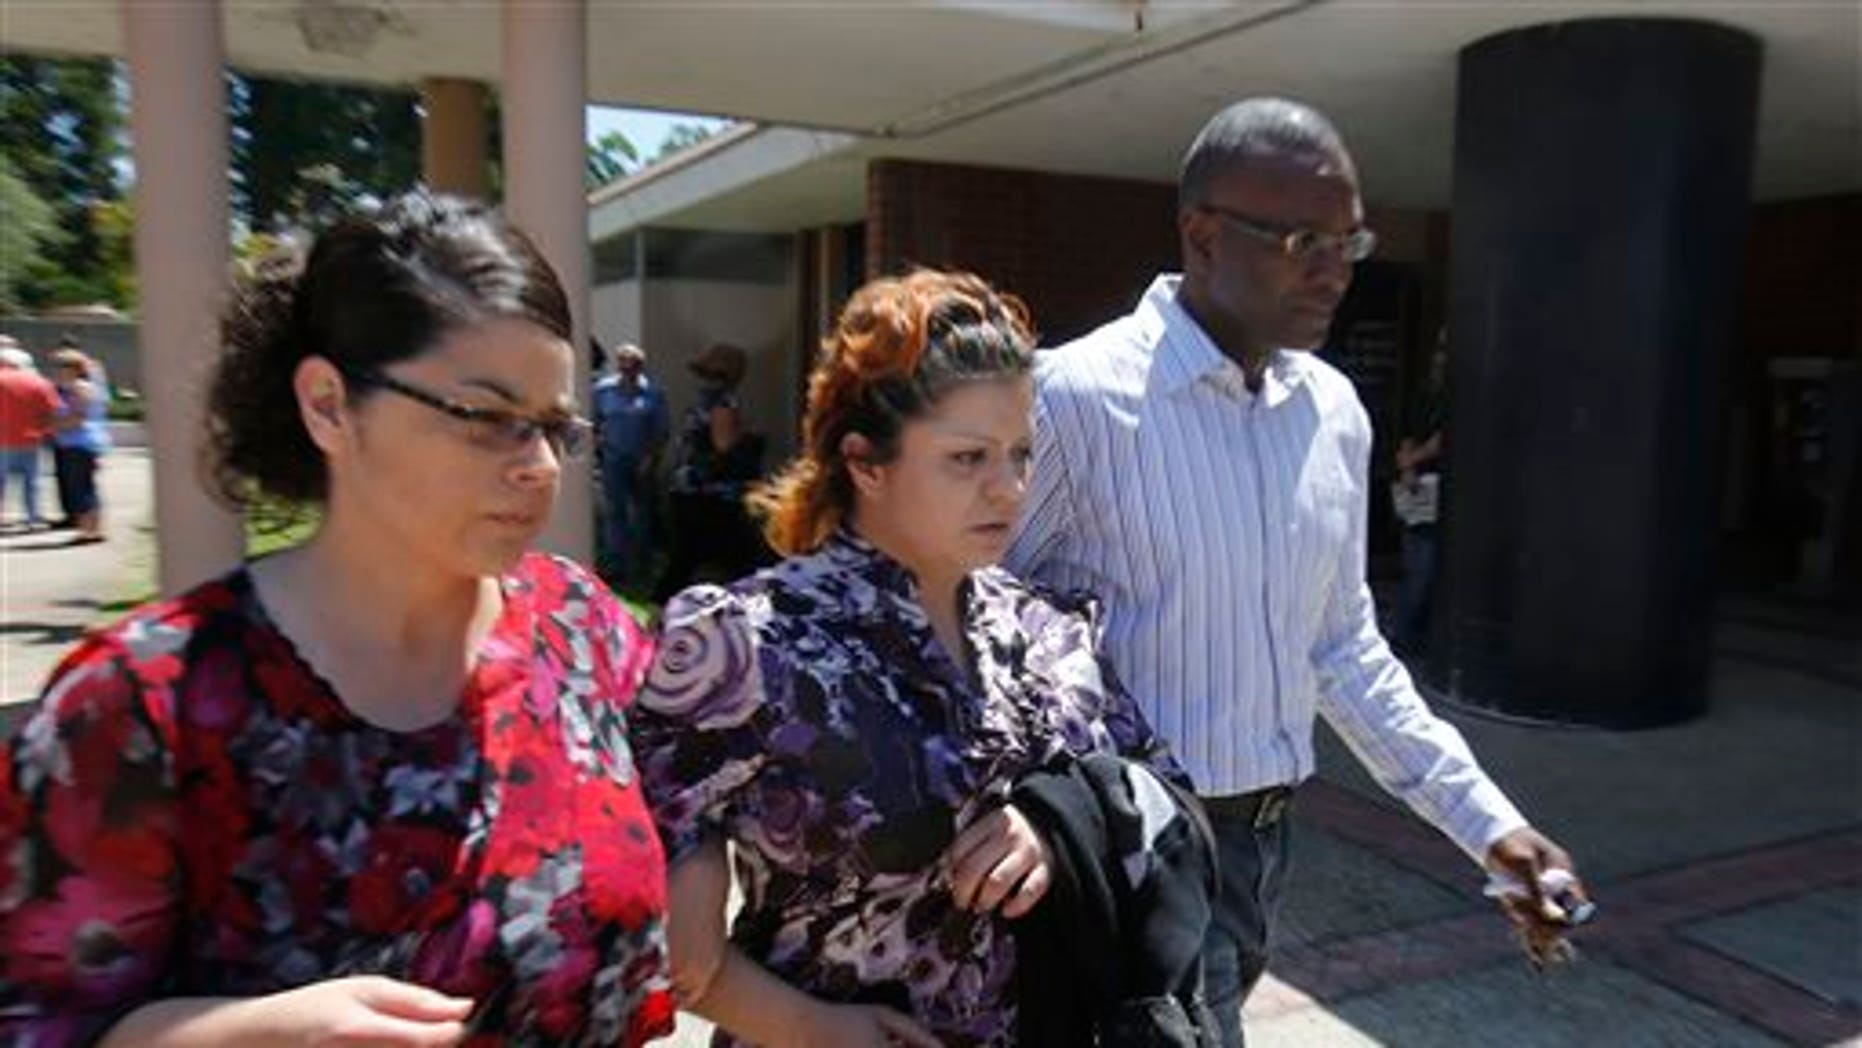 Priscilla Rodriquez, center, the mother of murder victim of Leila Fowler, leaves the Calaveras County Courthouse, in San Andreas, Calif.,  after the arraignment of  her 12-year-old son for Leila's  murder, Wednesday, May 15, 2013.  Leila Fowler, 8, was stabbed to death in her Valley Springs home, last month.  The defendant was charged with second-degree murder and a special allegation for use of a dangerous weapon for the death of Leila Fowler. No plea was entered. (AP Photo/Rich Pedroncelli)